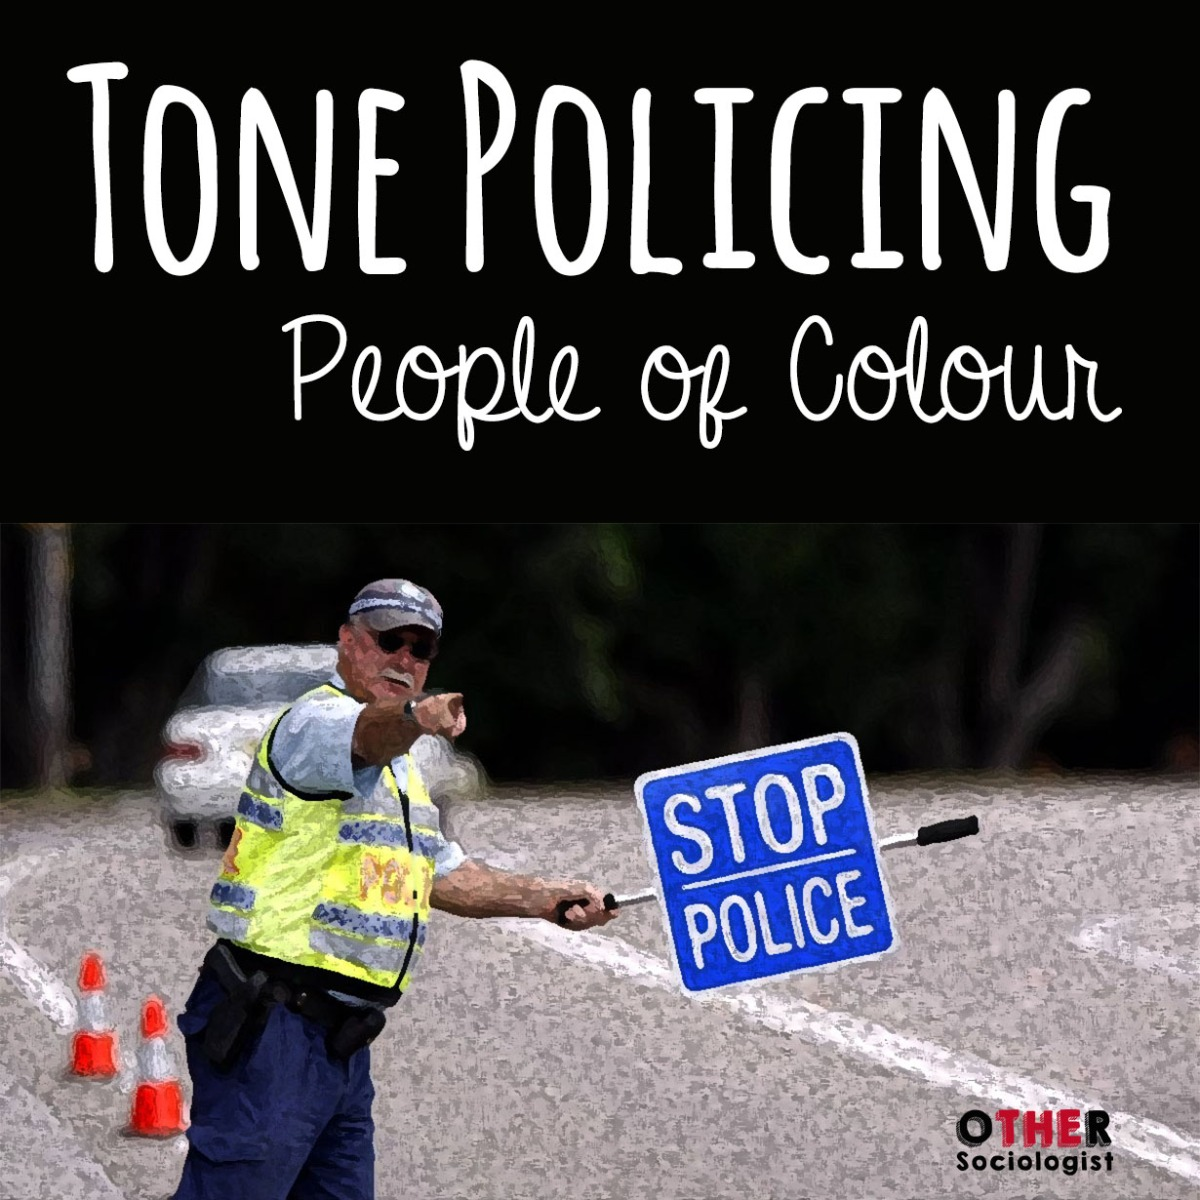 Tone Policing People of Colour